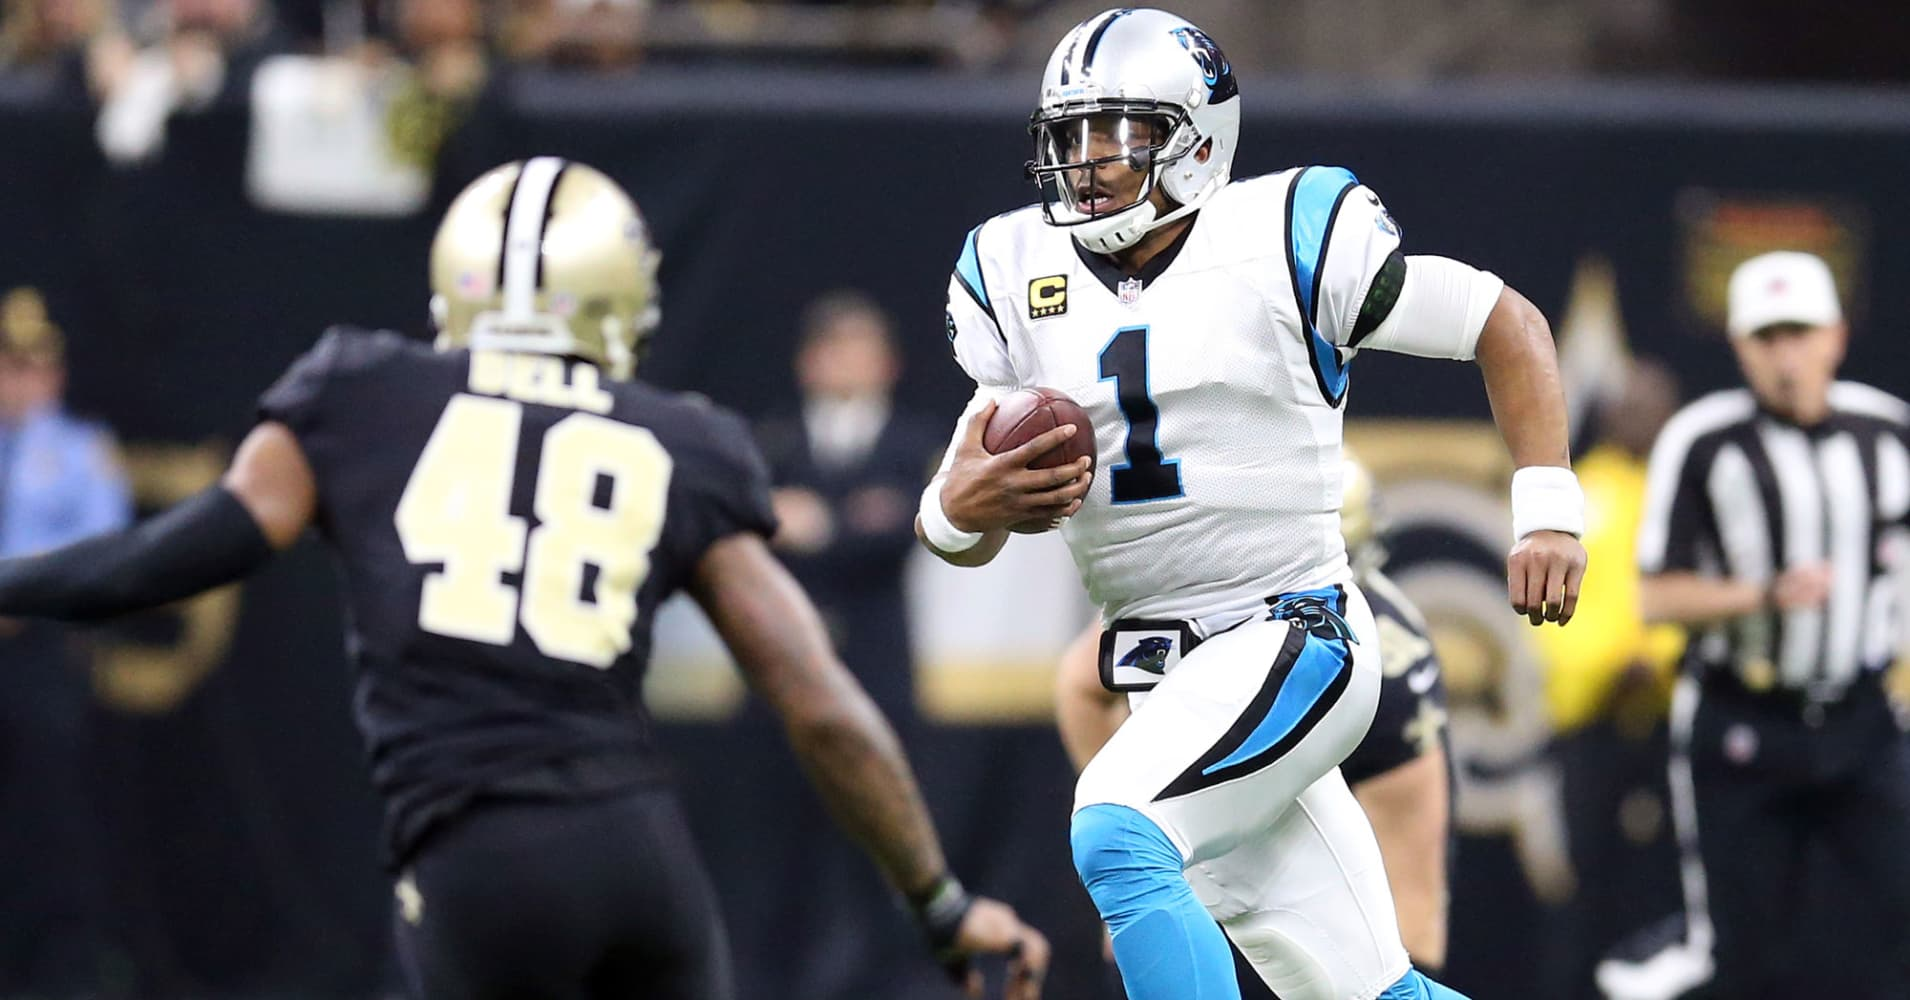 Cam Newton #1 of the Carolina Panthers runs the ball against Vonn Bell #48 of the New Orleans Saints during the first half of the NFC Wild Card playoff game at the Mercedes-Benz Superdome on January 7, 2018 in New Orleans, Louisiana.